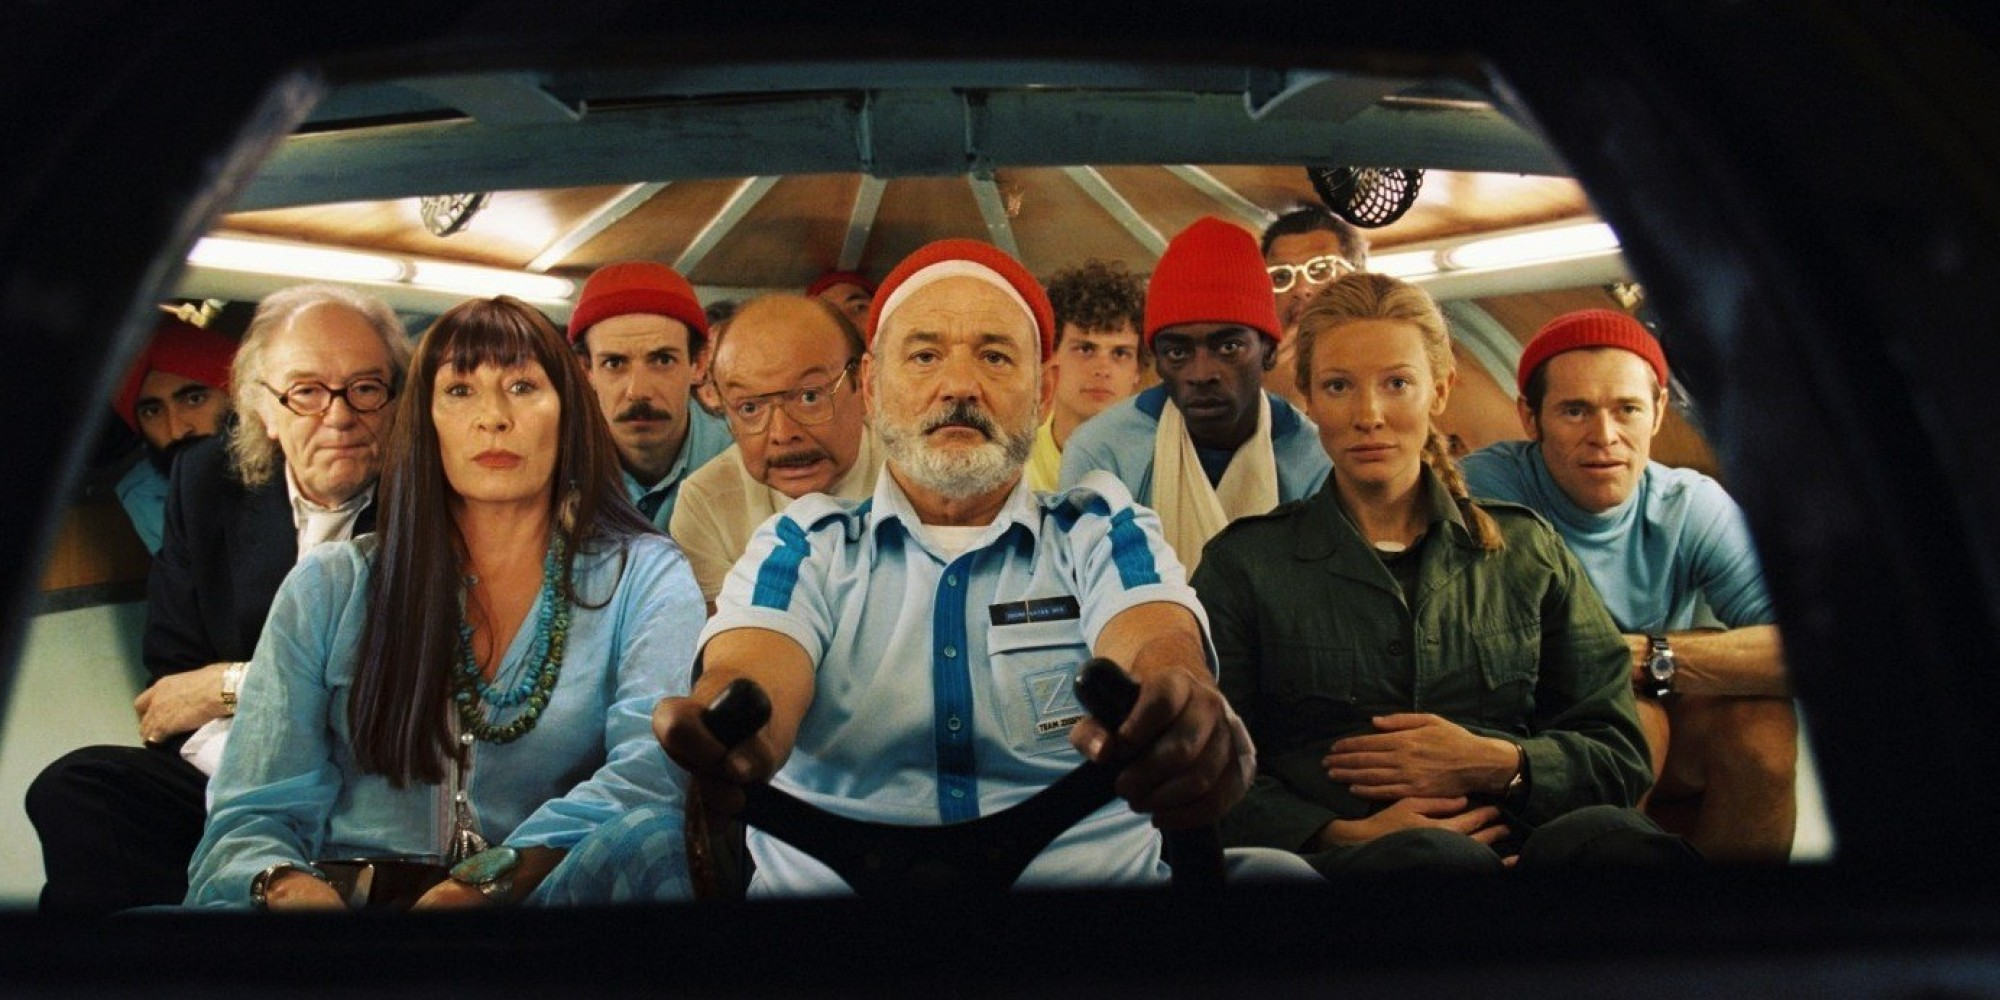 wes anderson on the 'life aquatic' scene that made you cry | huffpost